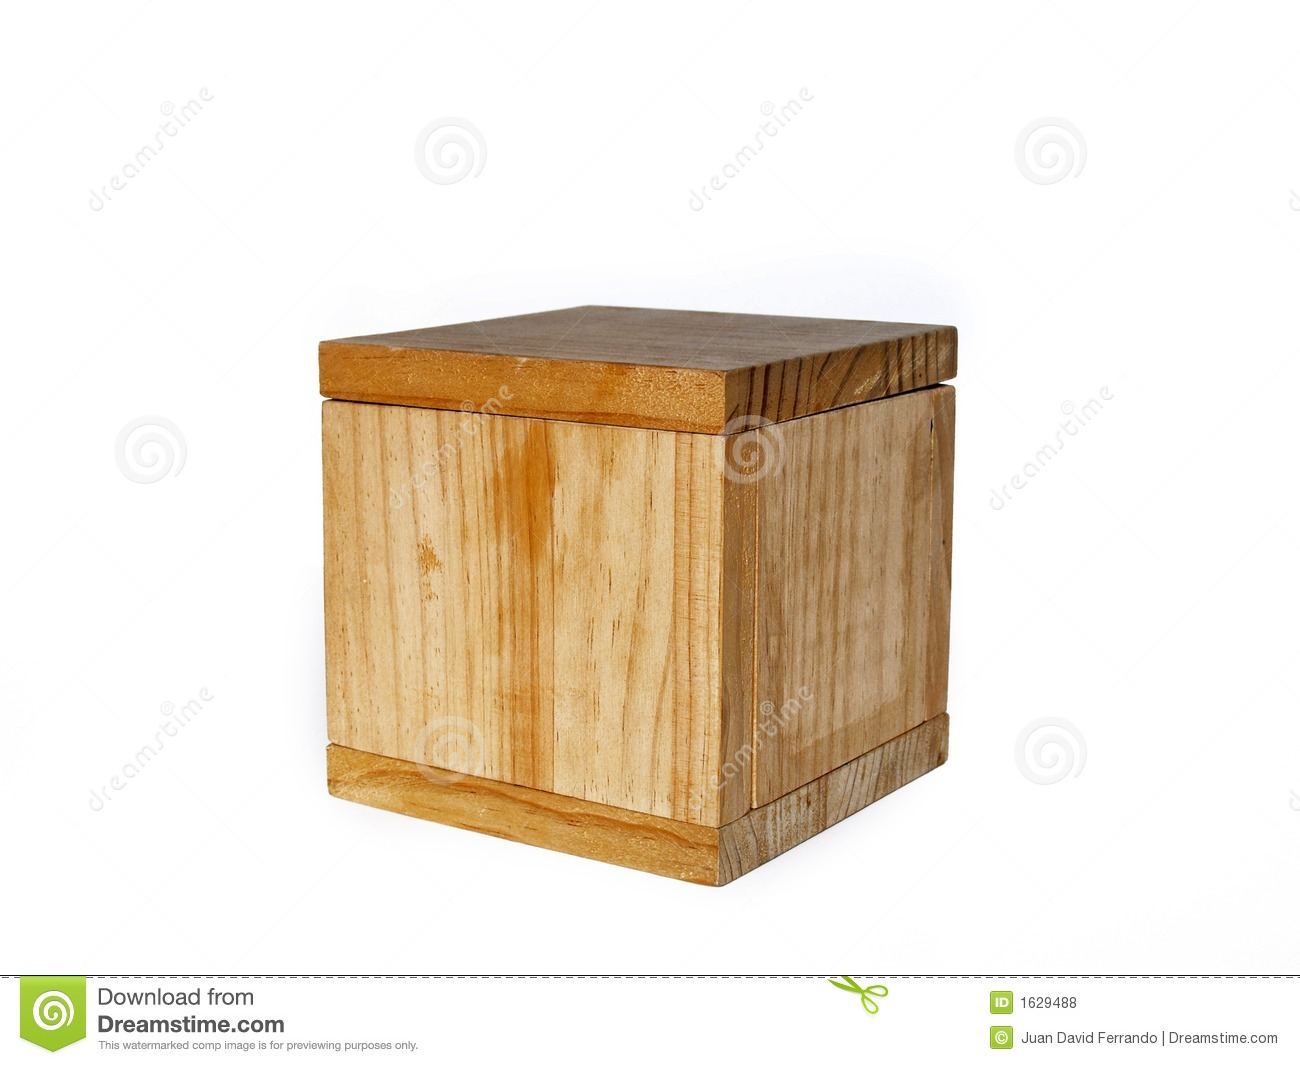 wooden box clipart. royaltyfree stock photo download heavy wooden box clipart